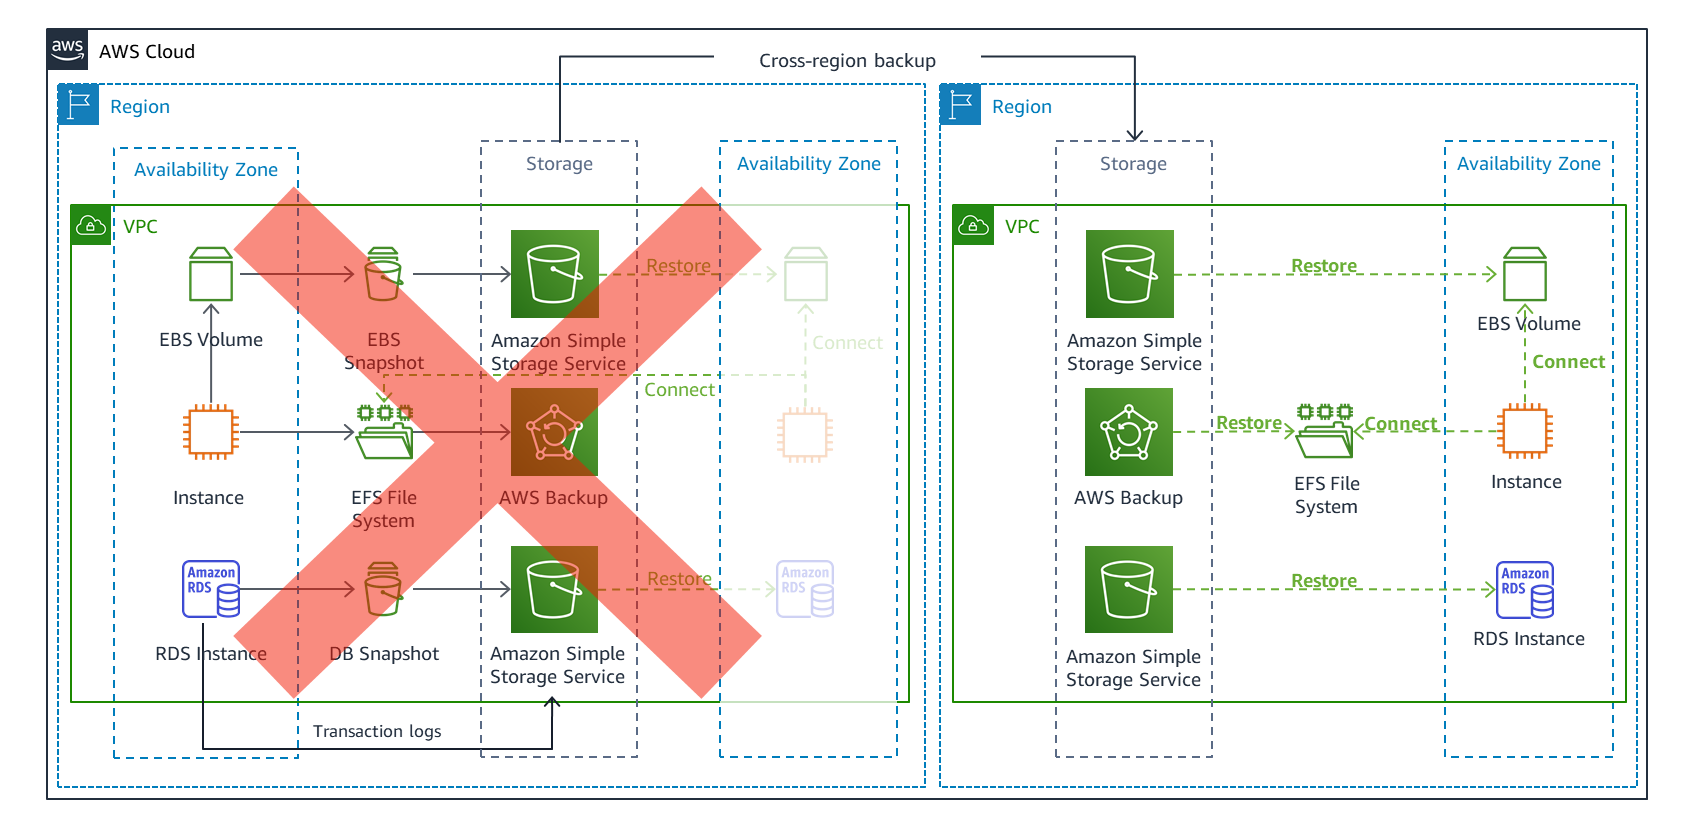 Failover and cross-Region recovery with a multi-Region backup and restore strategy